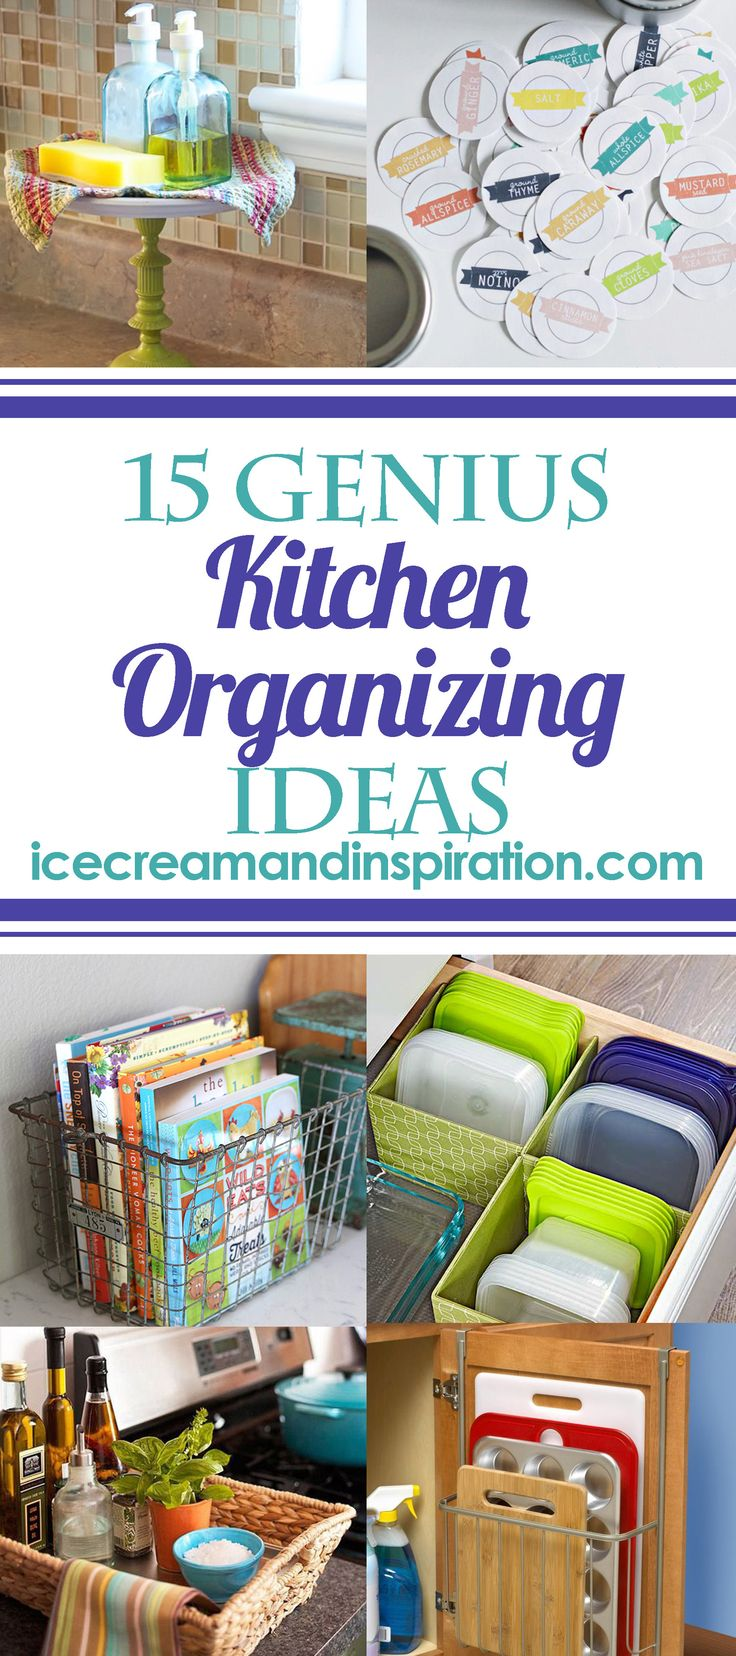 These 15 Genius Kitchen Organizing Ideas will have your kitchen looking neat and organized in no time!All are inexpensive and easy!